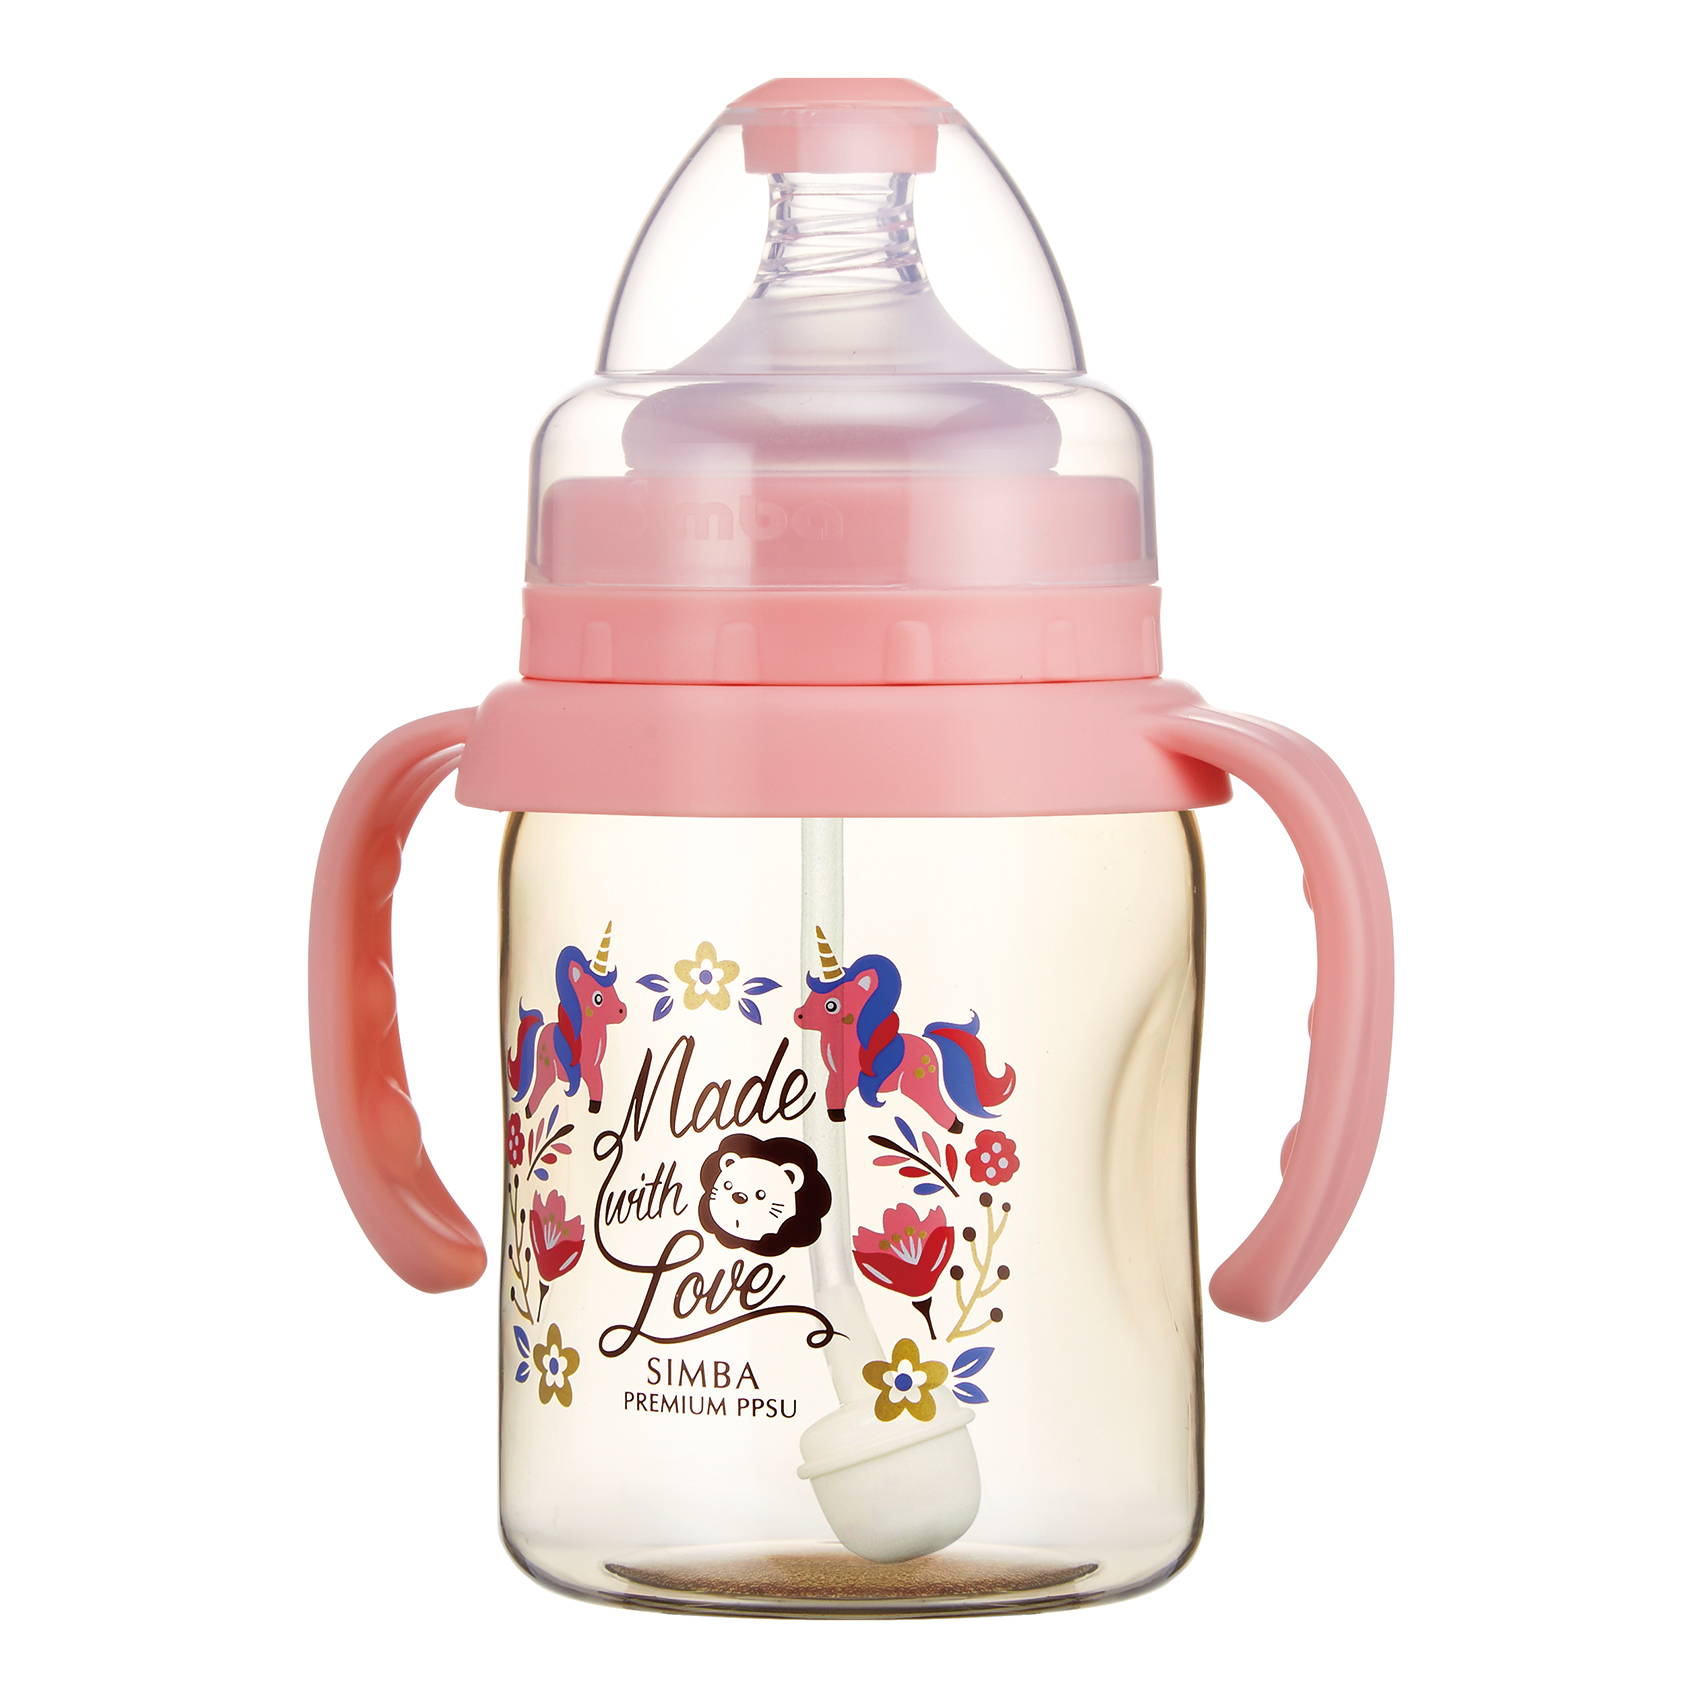 Simba Premium 7 oz PPSU Wide Neck Feeding Bottle with Handle and Weight Straw (Pink, Stage 1 Nipple)